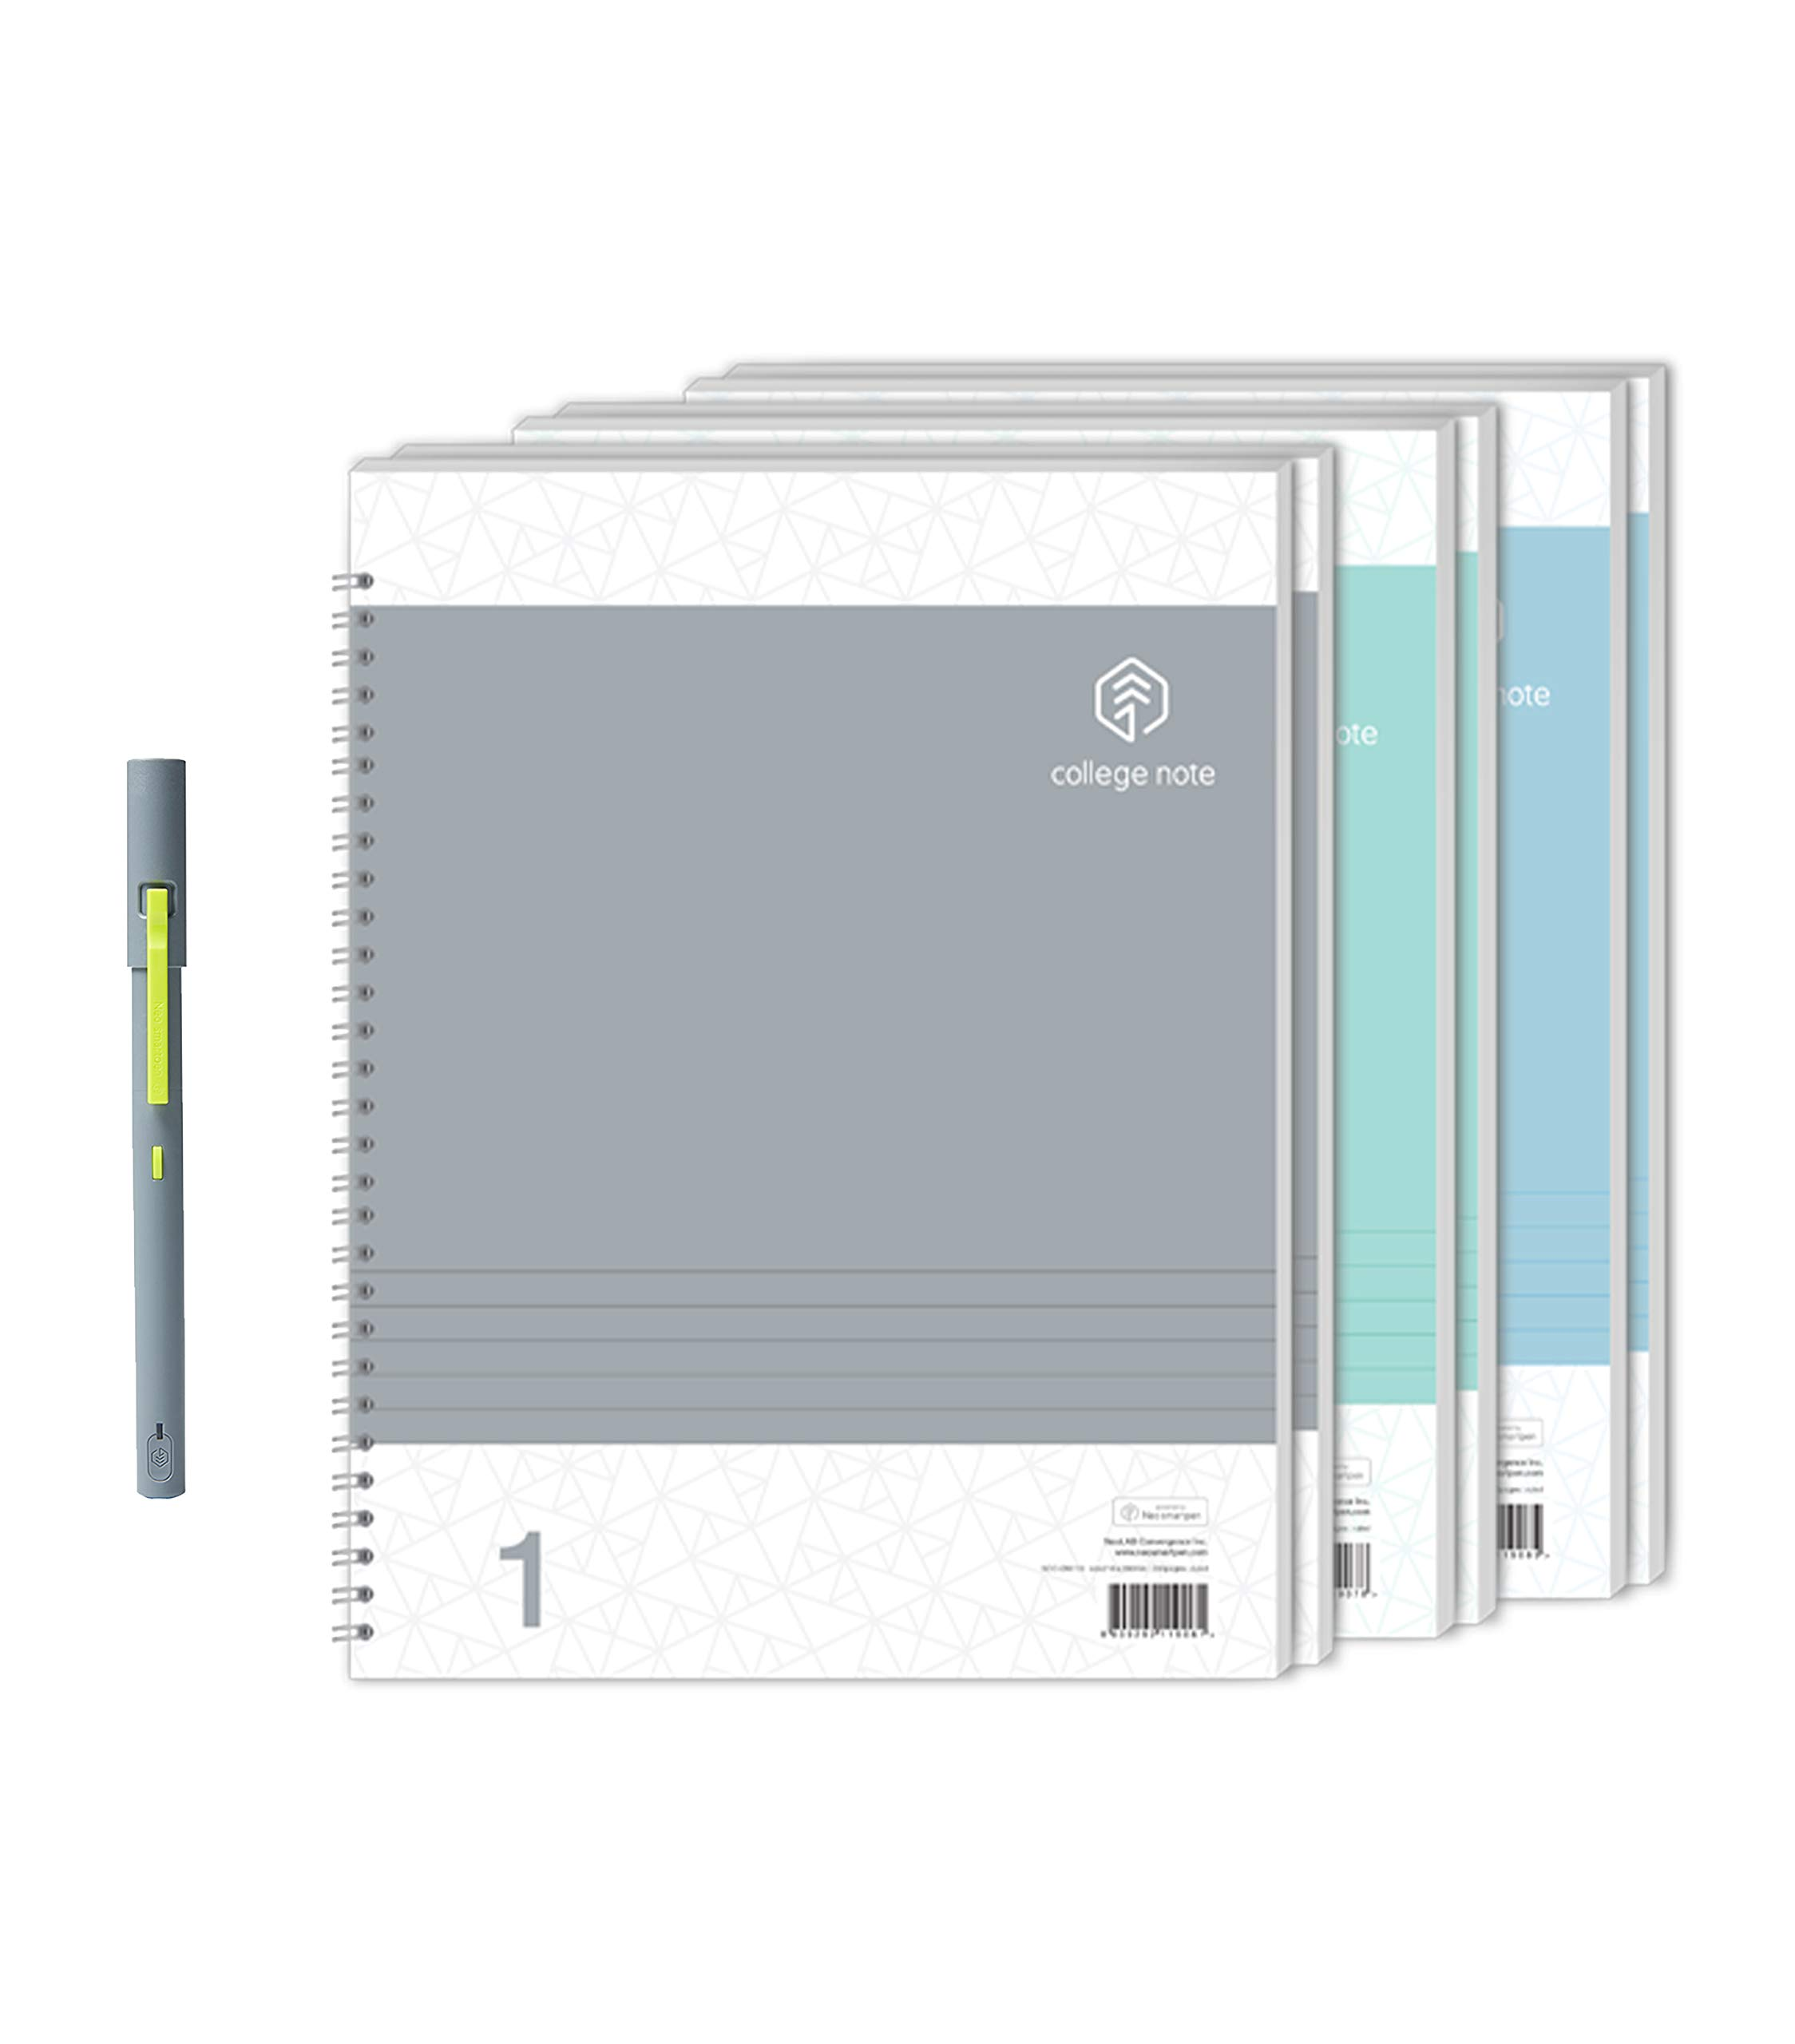 Neo Smartpen M1 (Grey) with N College Notebooks (3 Pack - 200 College Ruled Pages) Bundle for iOS, Android, Smartphones, Tablets, and Windows